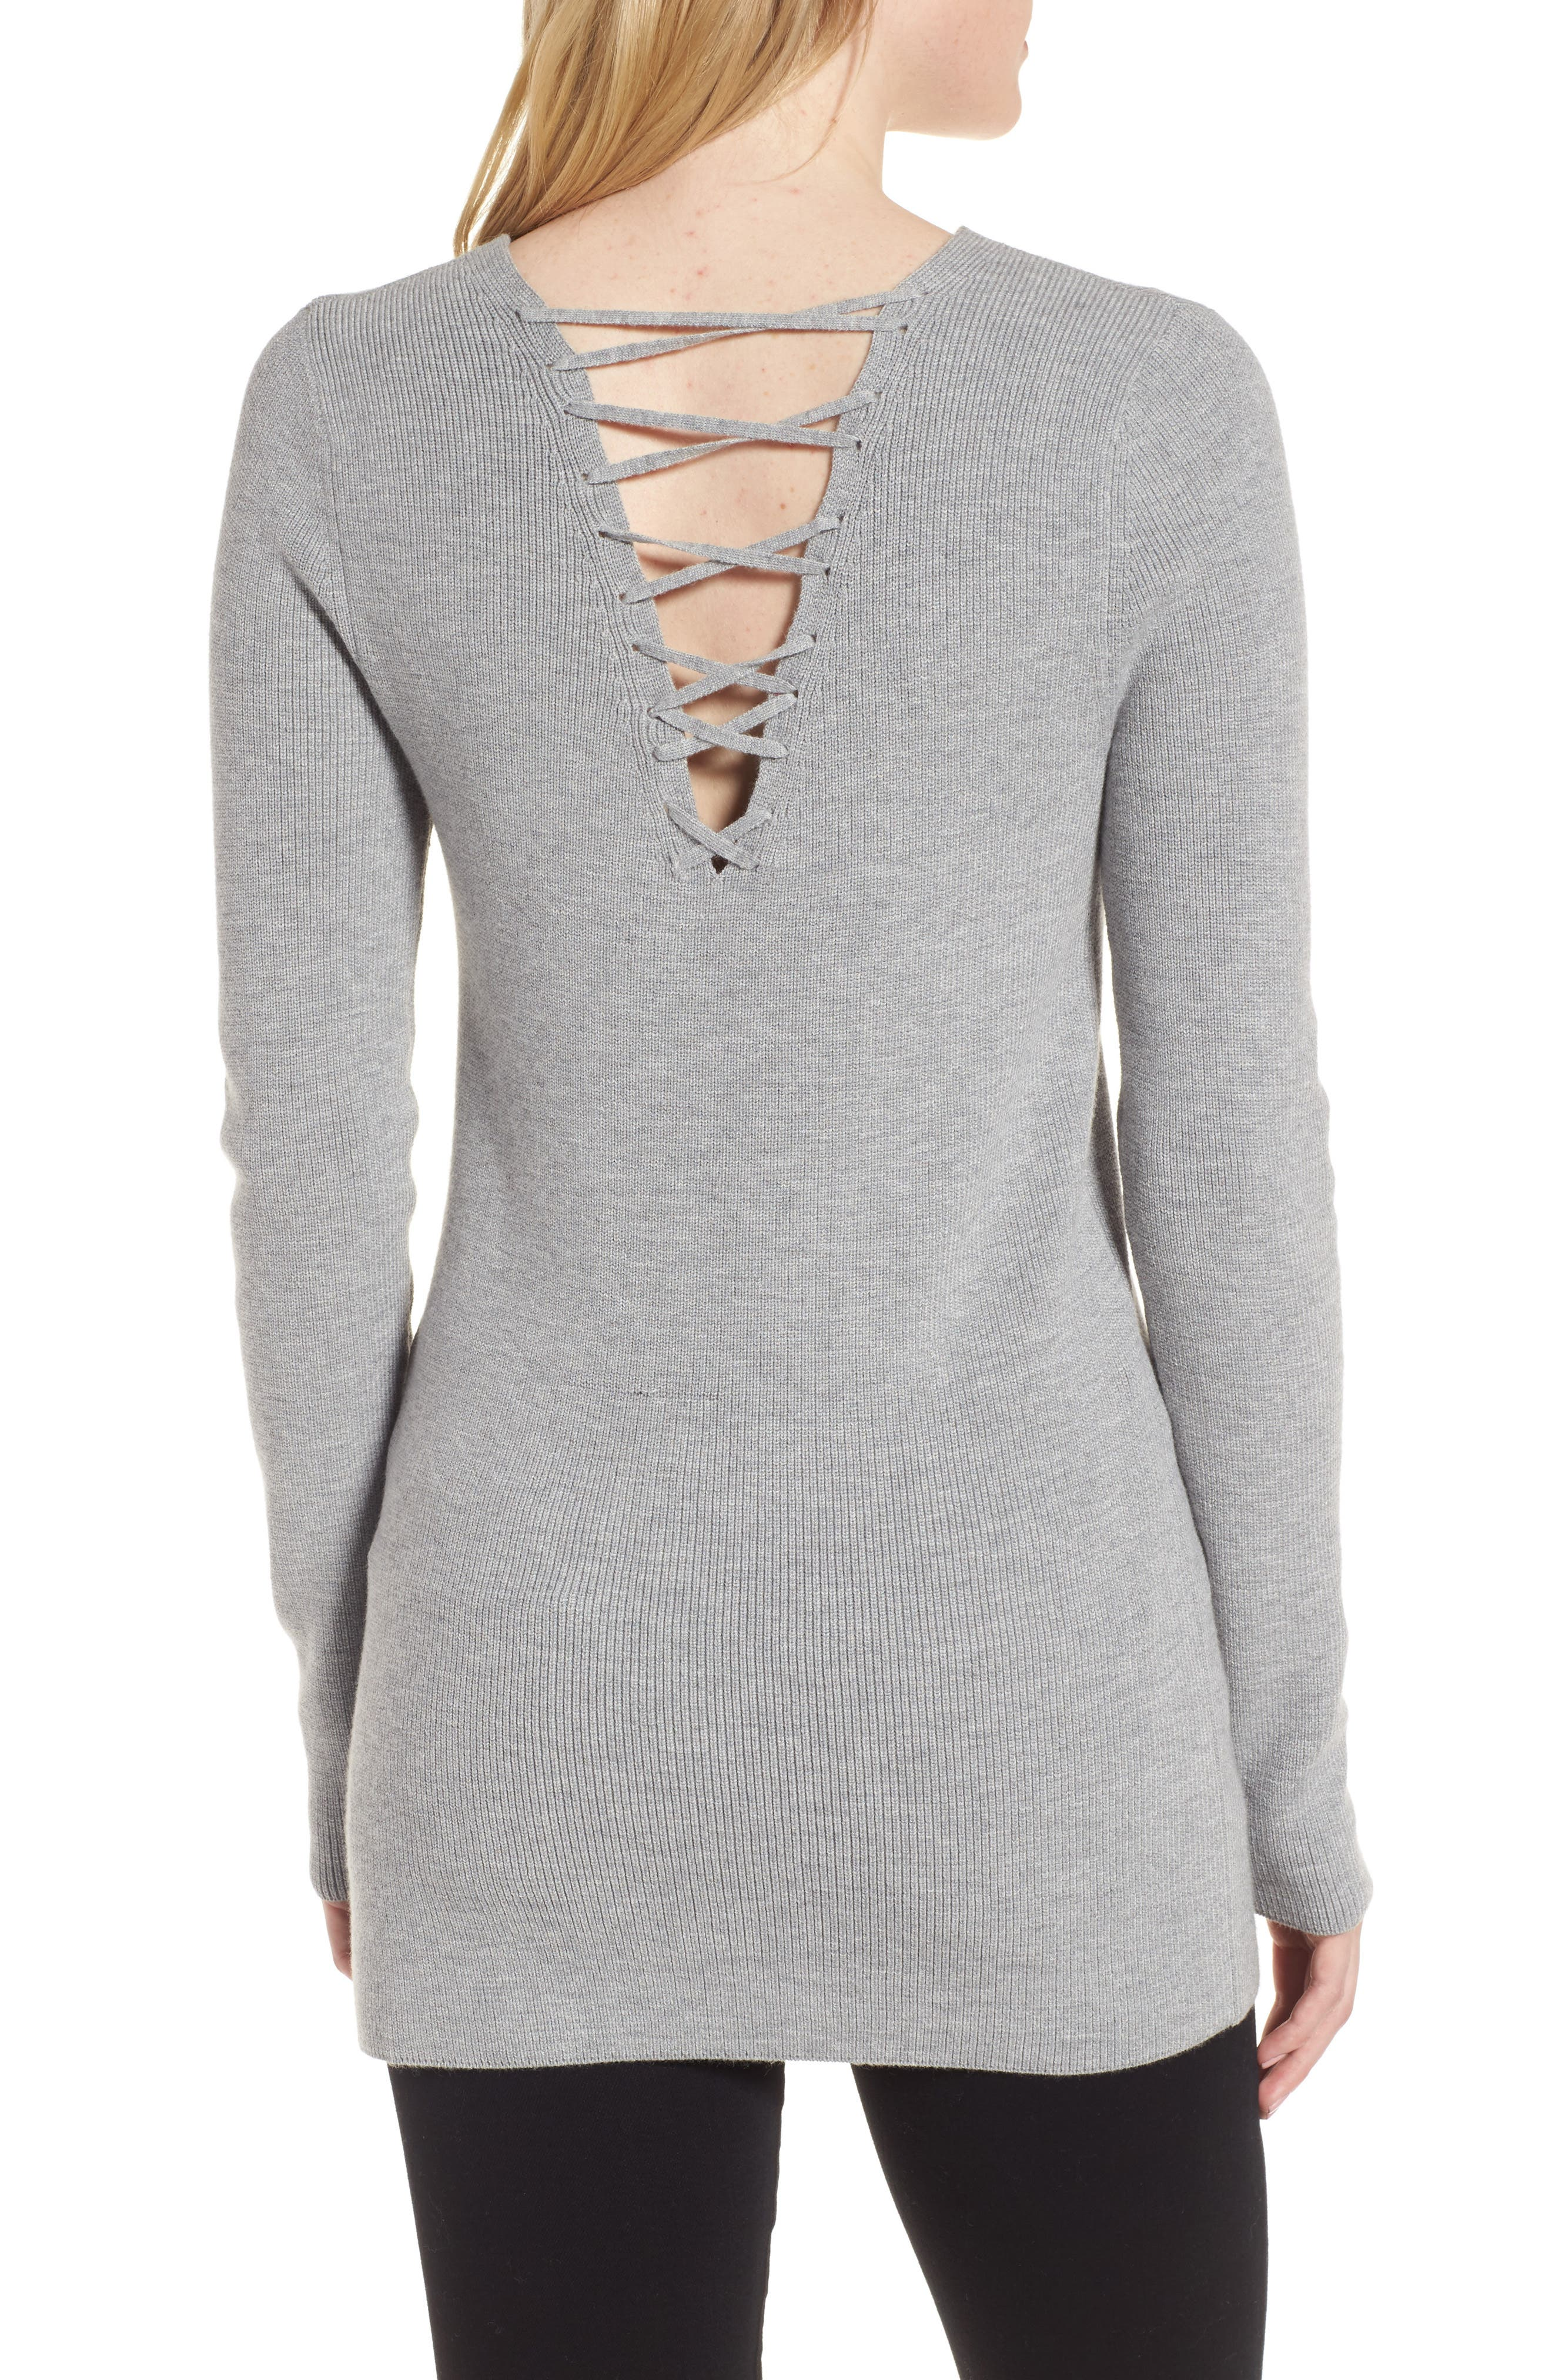 Lace-Up Back Sweater,                             Alternate thumbnail 3, color,